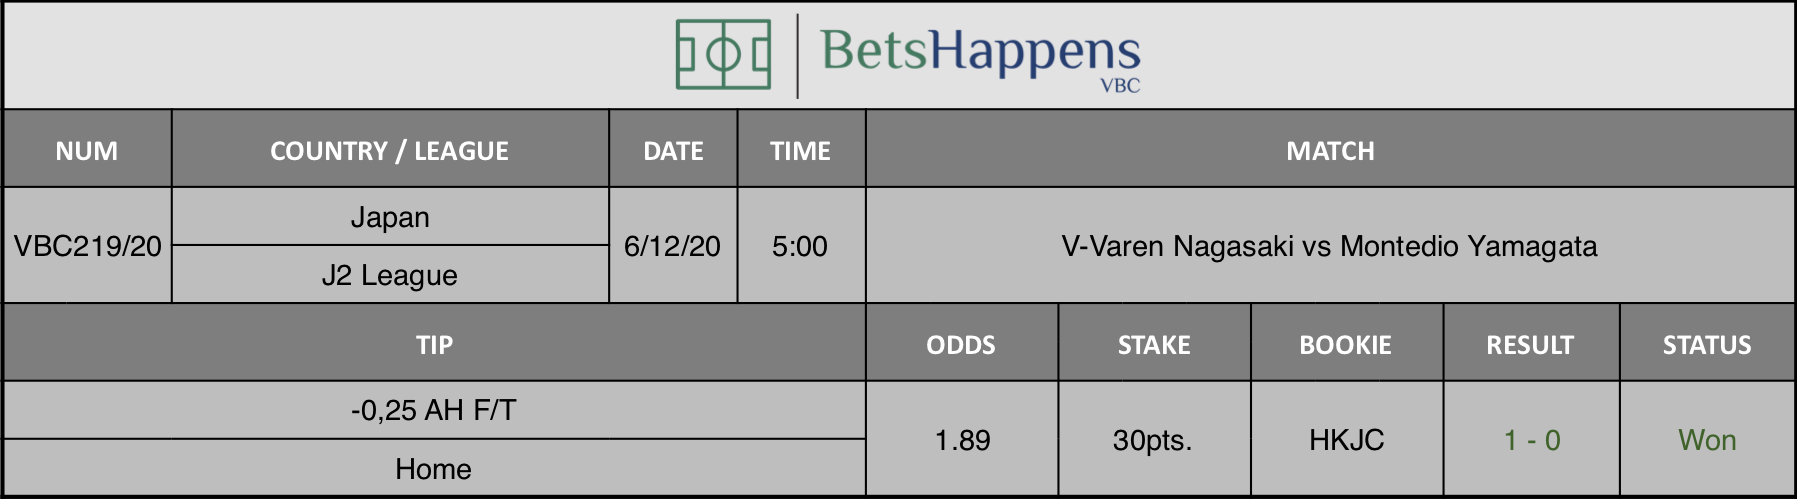 Results of our tip for the V-Varen Nagasaki vs Montedio Yamagata match where -0,25 AH F/T  Home is recommended.